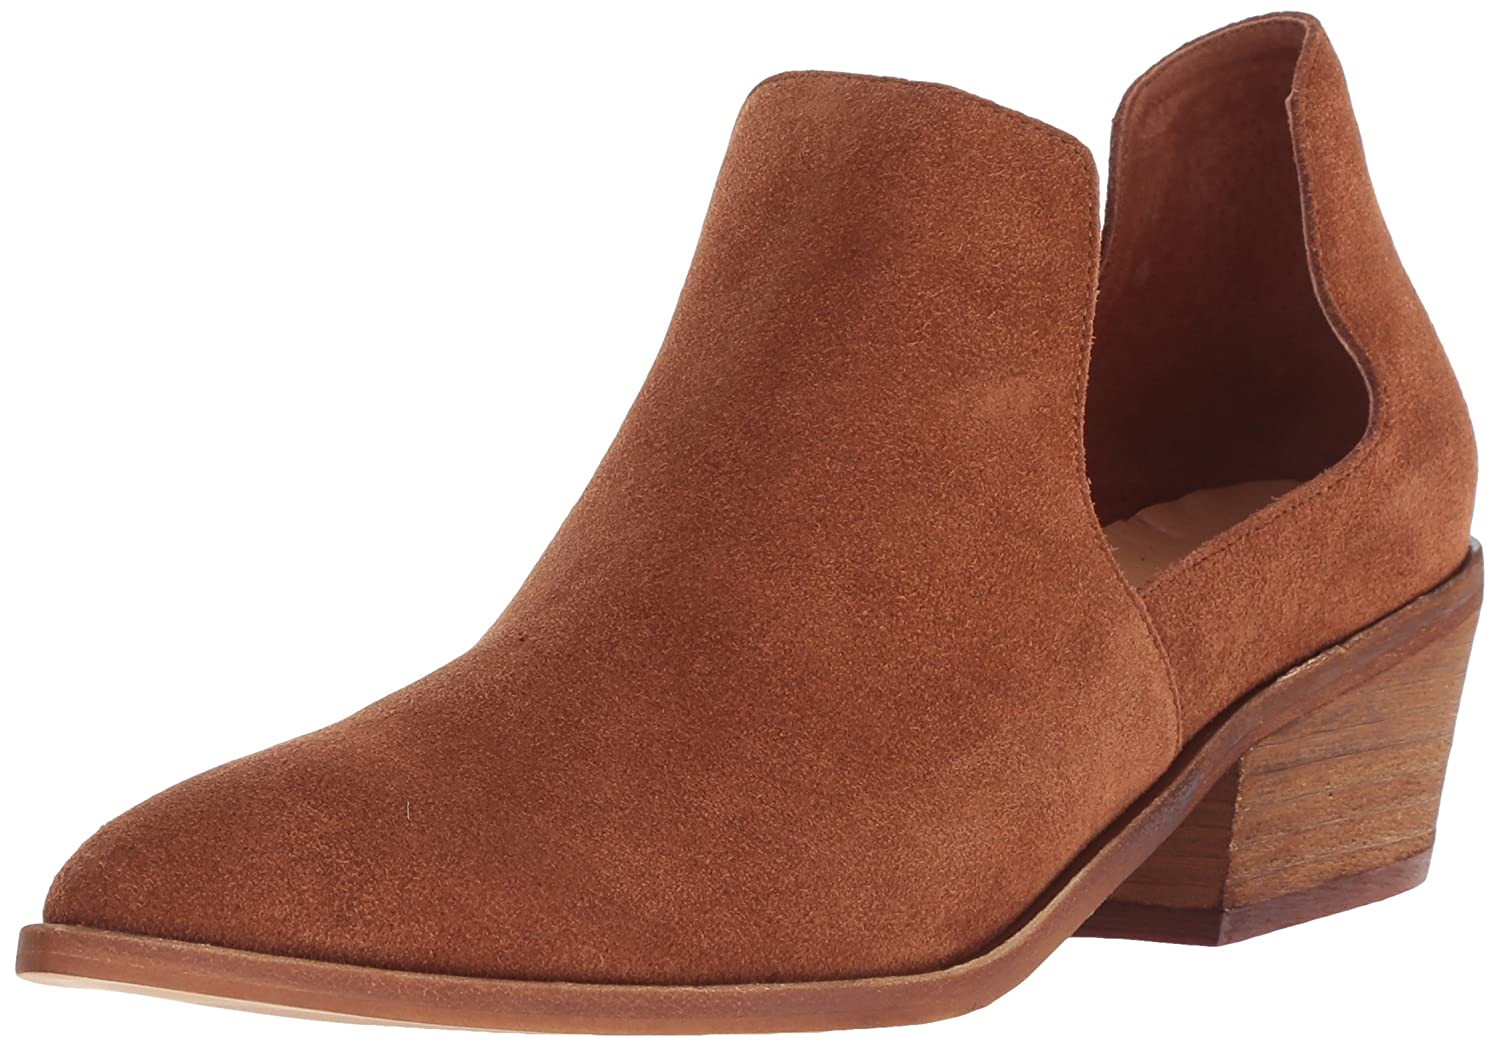 Chinese Laundry Women's Focus Ankle Bootie B07BN3J6FJ 11 B(M) US|Rust Suede